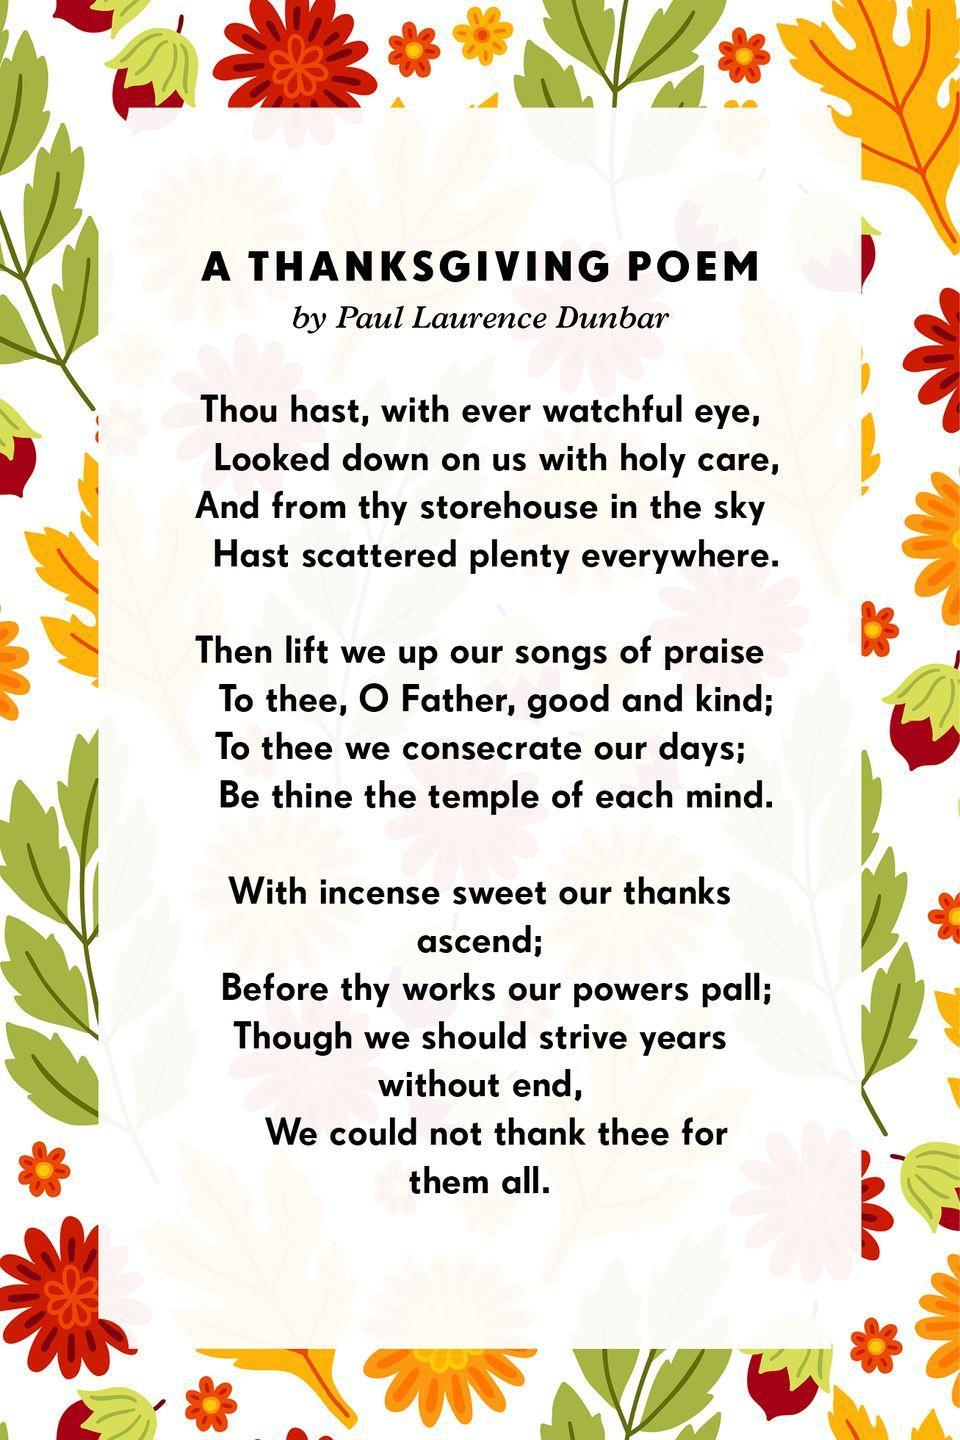 <p><strong>A Thanksgiving Poem</strong></p><p>Thou hast, with ever watchful eye,<br> Looked down on us with holy care,<br>And from thy storehouse in the sky<br> Hast scattered plenty everywhere.<br><br>Then lift we up our songs of praise<br> To thee, O Father, good and kind;<br>To thee we consecrate our days;<br> Be thine the temple of each mind.<br><br>With incense sweet our thanks ascend;<br> Before thy works our powers pall;<br>Though we should strive years without end,<br> We could not thank thee for them all.</p>